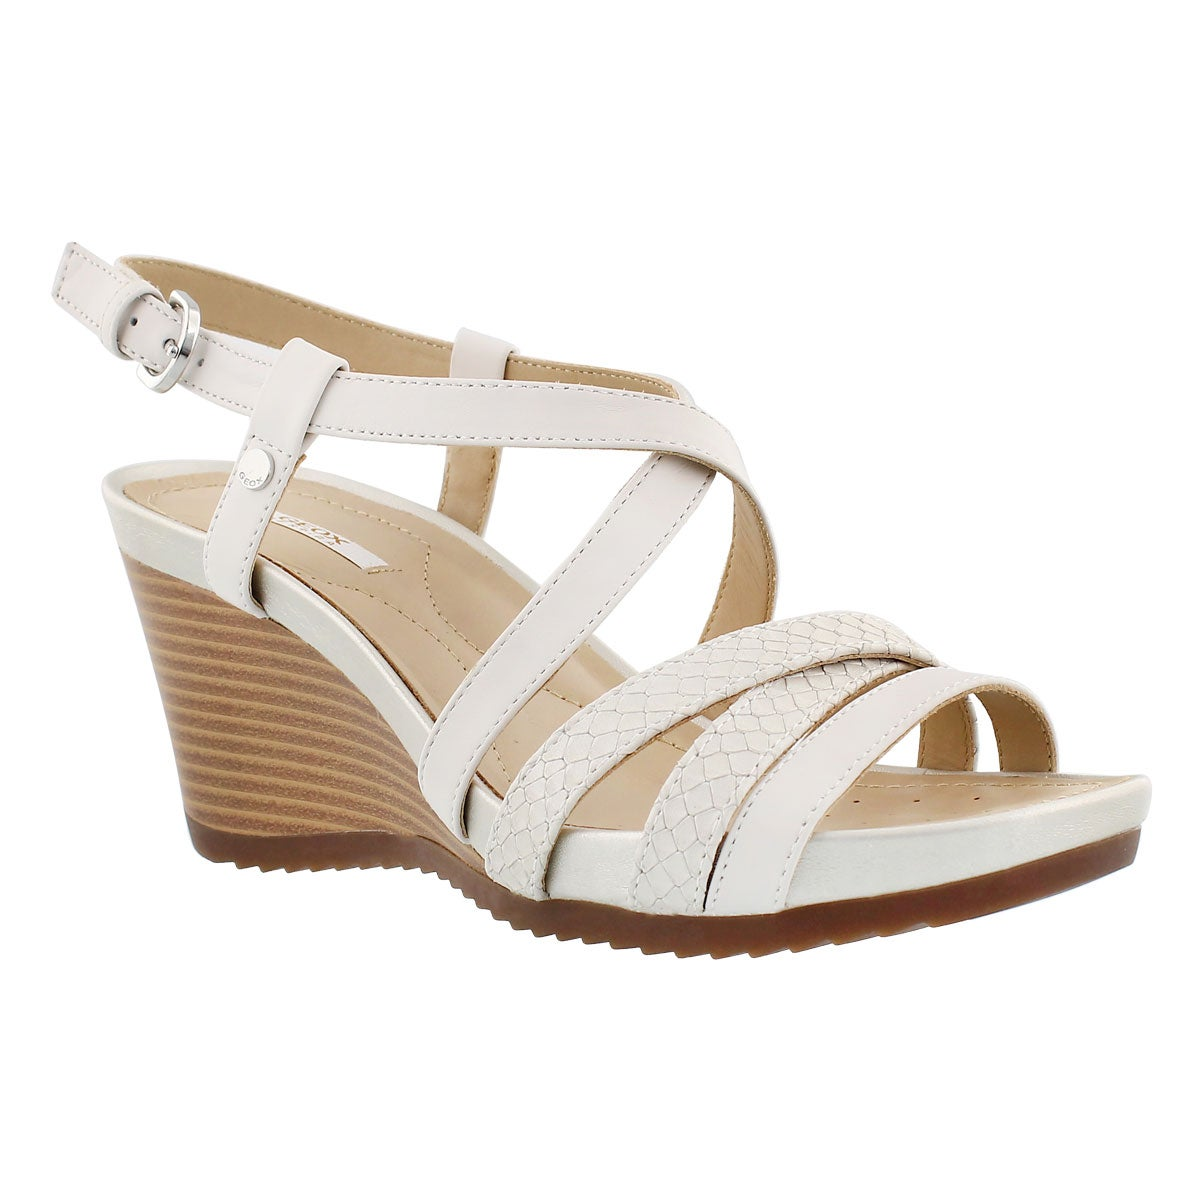 Lds New Rorie white wedge sandal